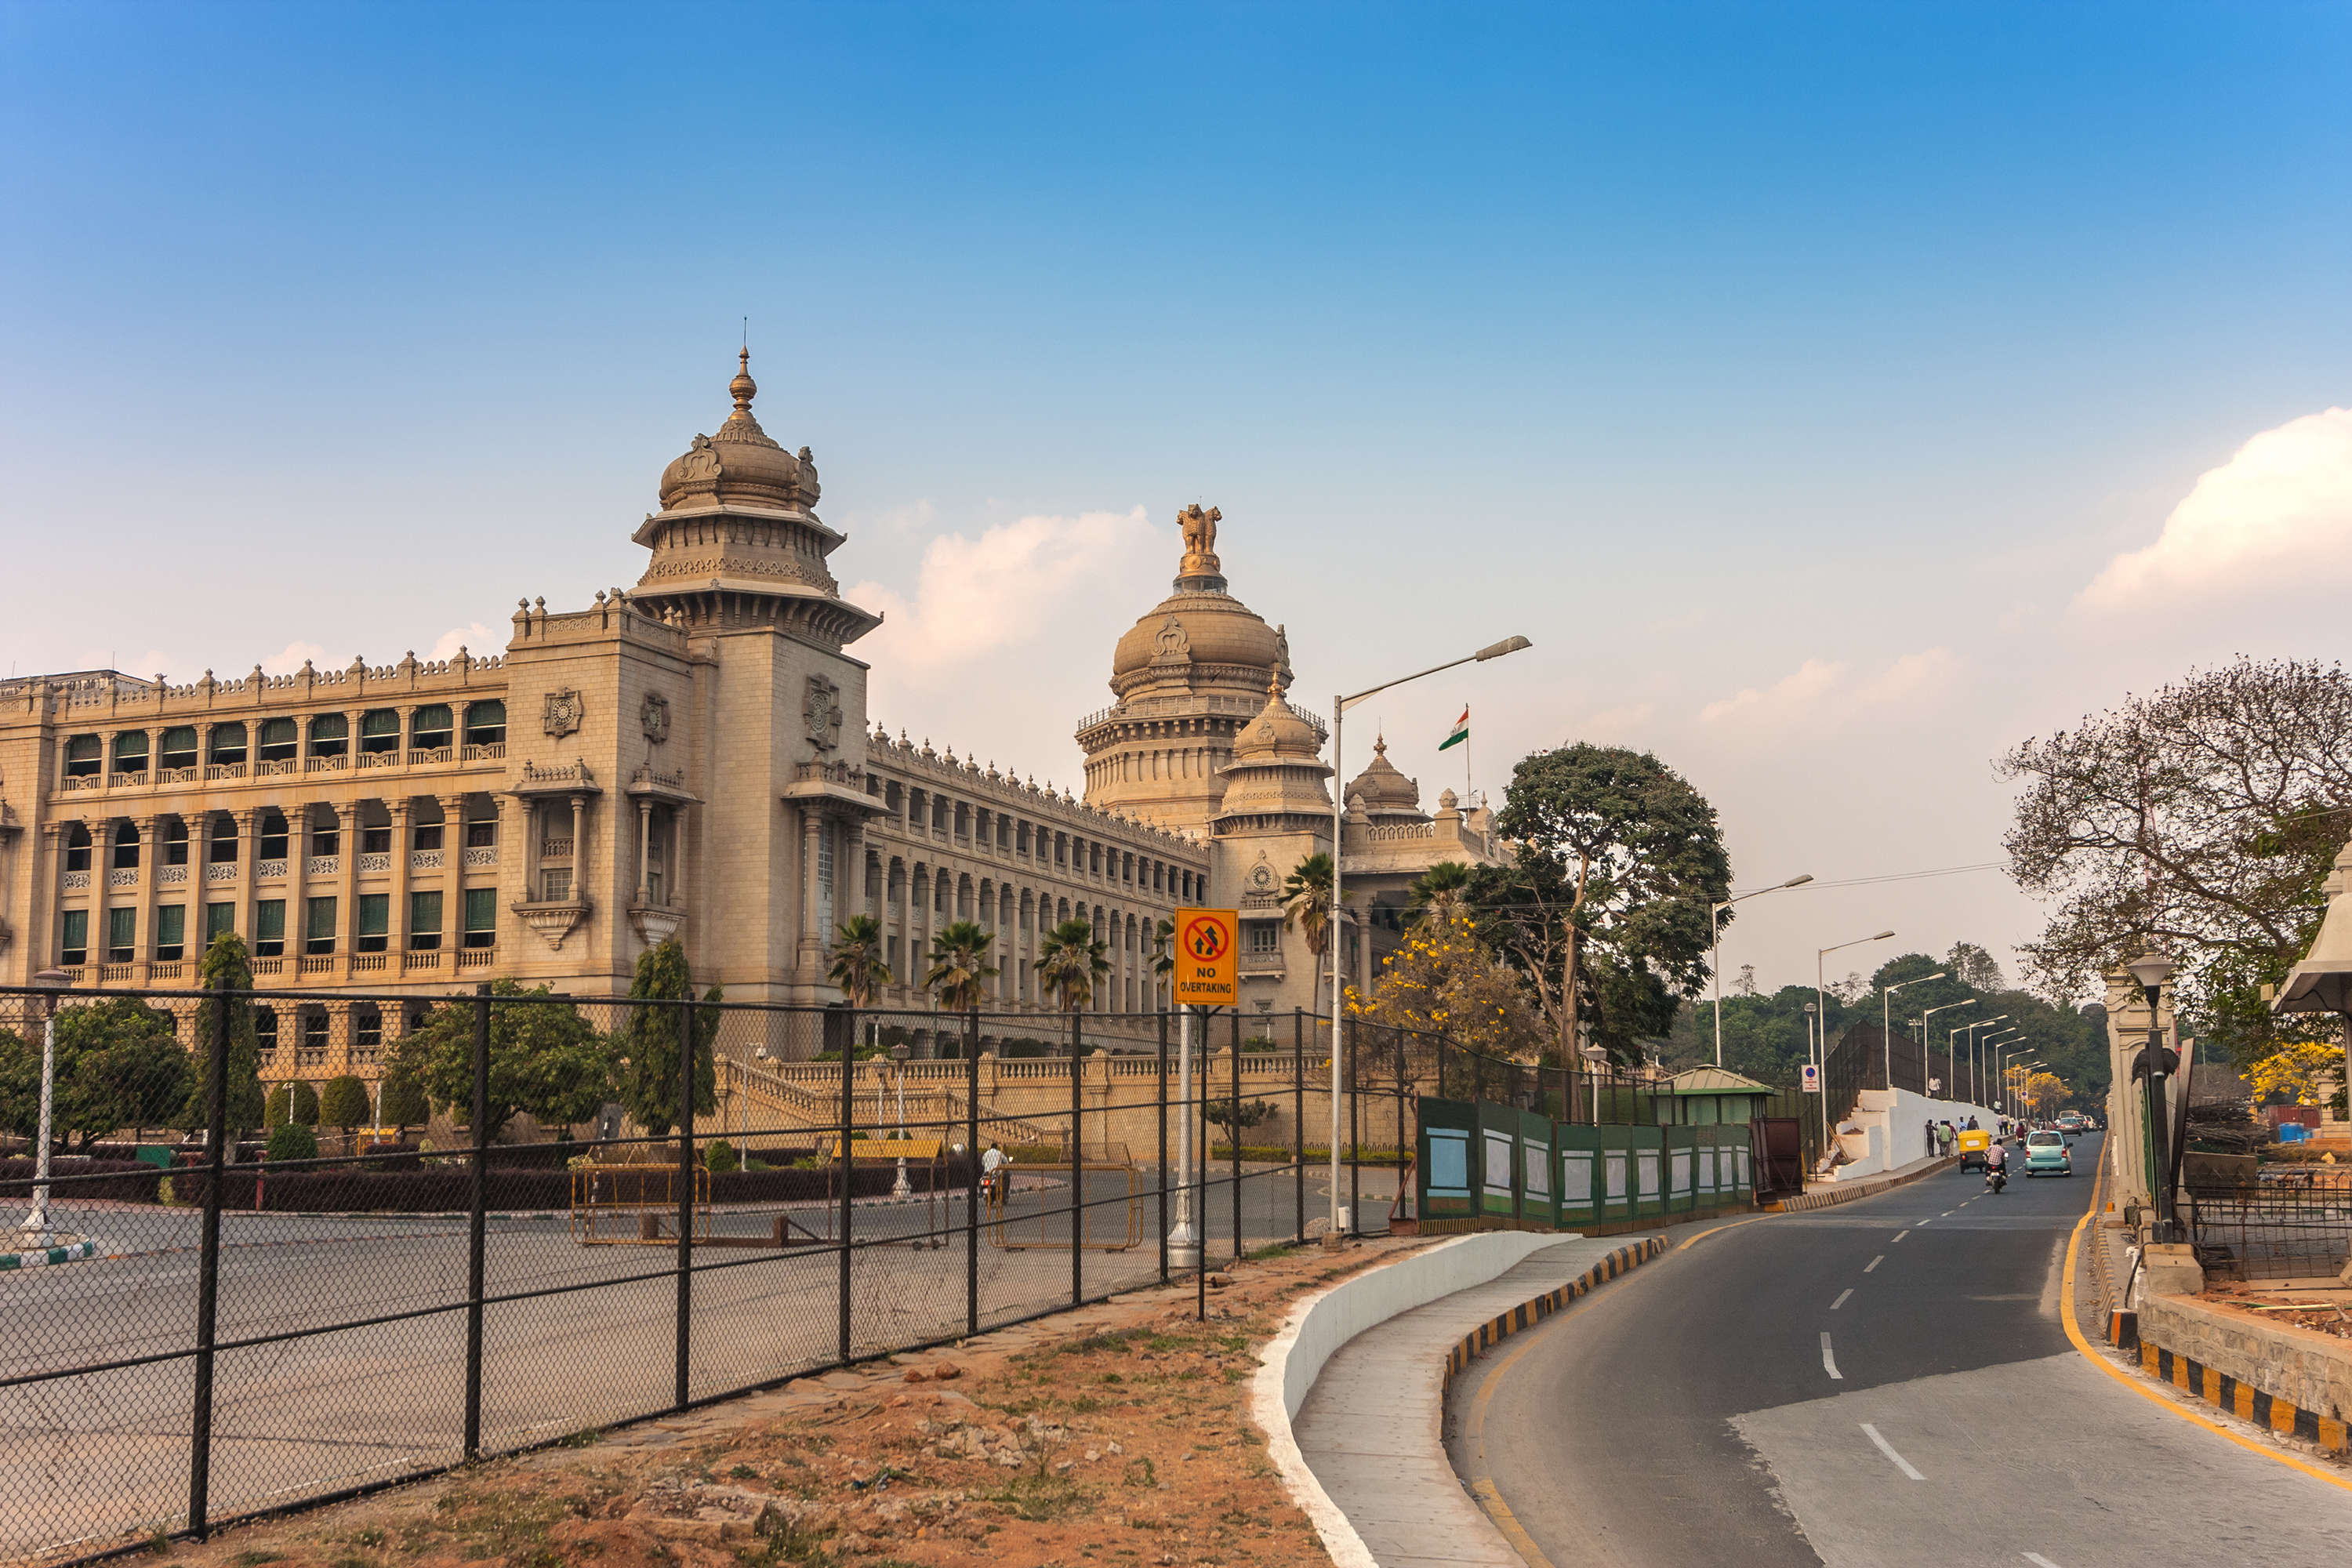 Cheap hotels in Bangalore near Majestic that you can consider